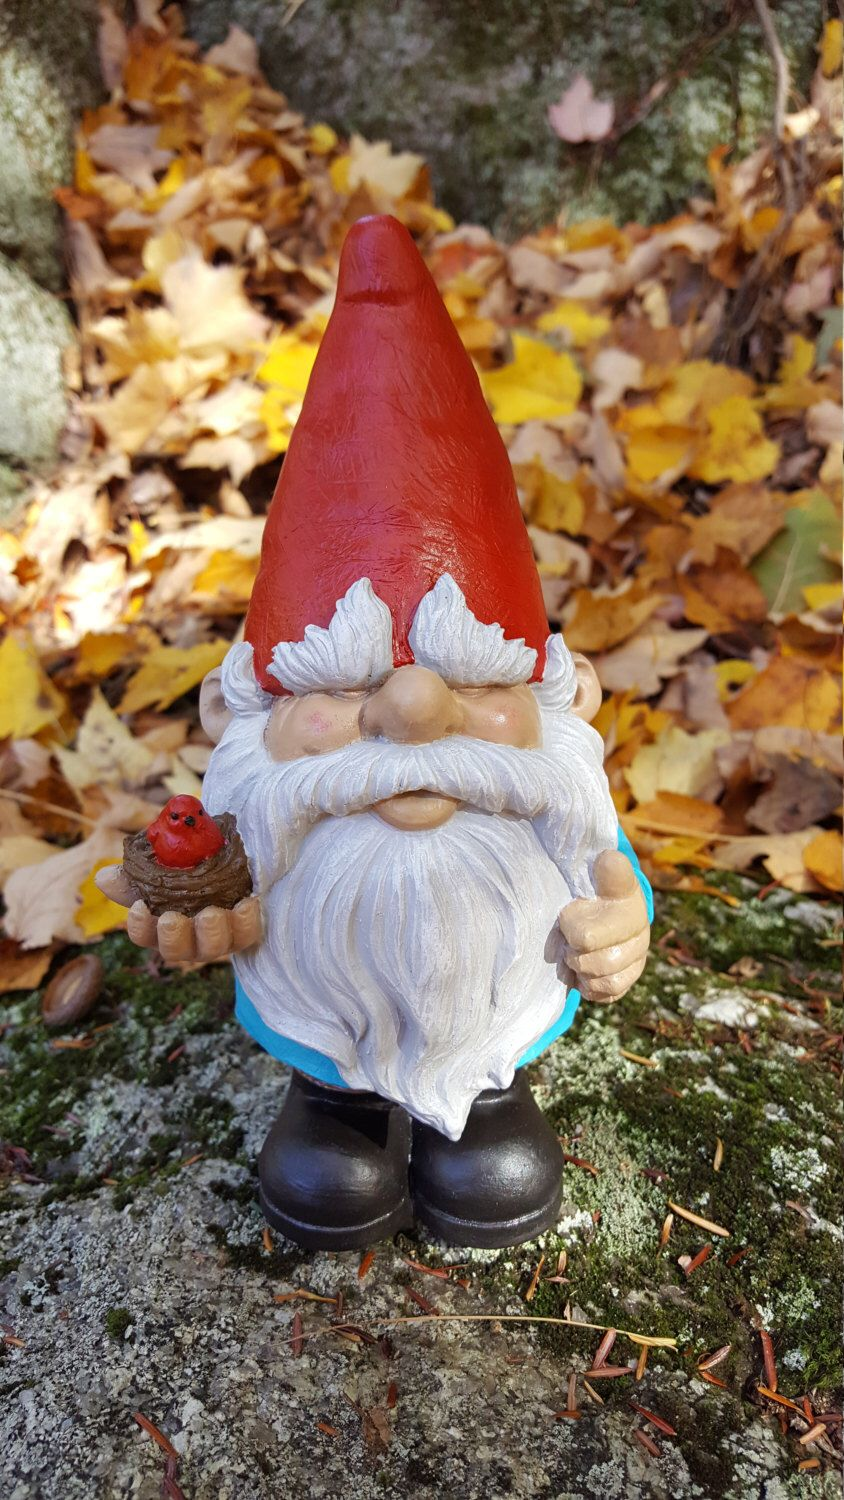 Gentil Gnome Statue, Garden Gnome With Bird, Funny Gnome Garden Decor, Fantasy Yard  Art, Unique Garden Gnome, Painted Concrete Statue By FireKDesigns On Etsy  ...